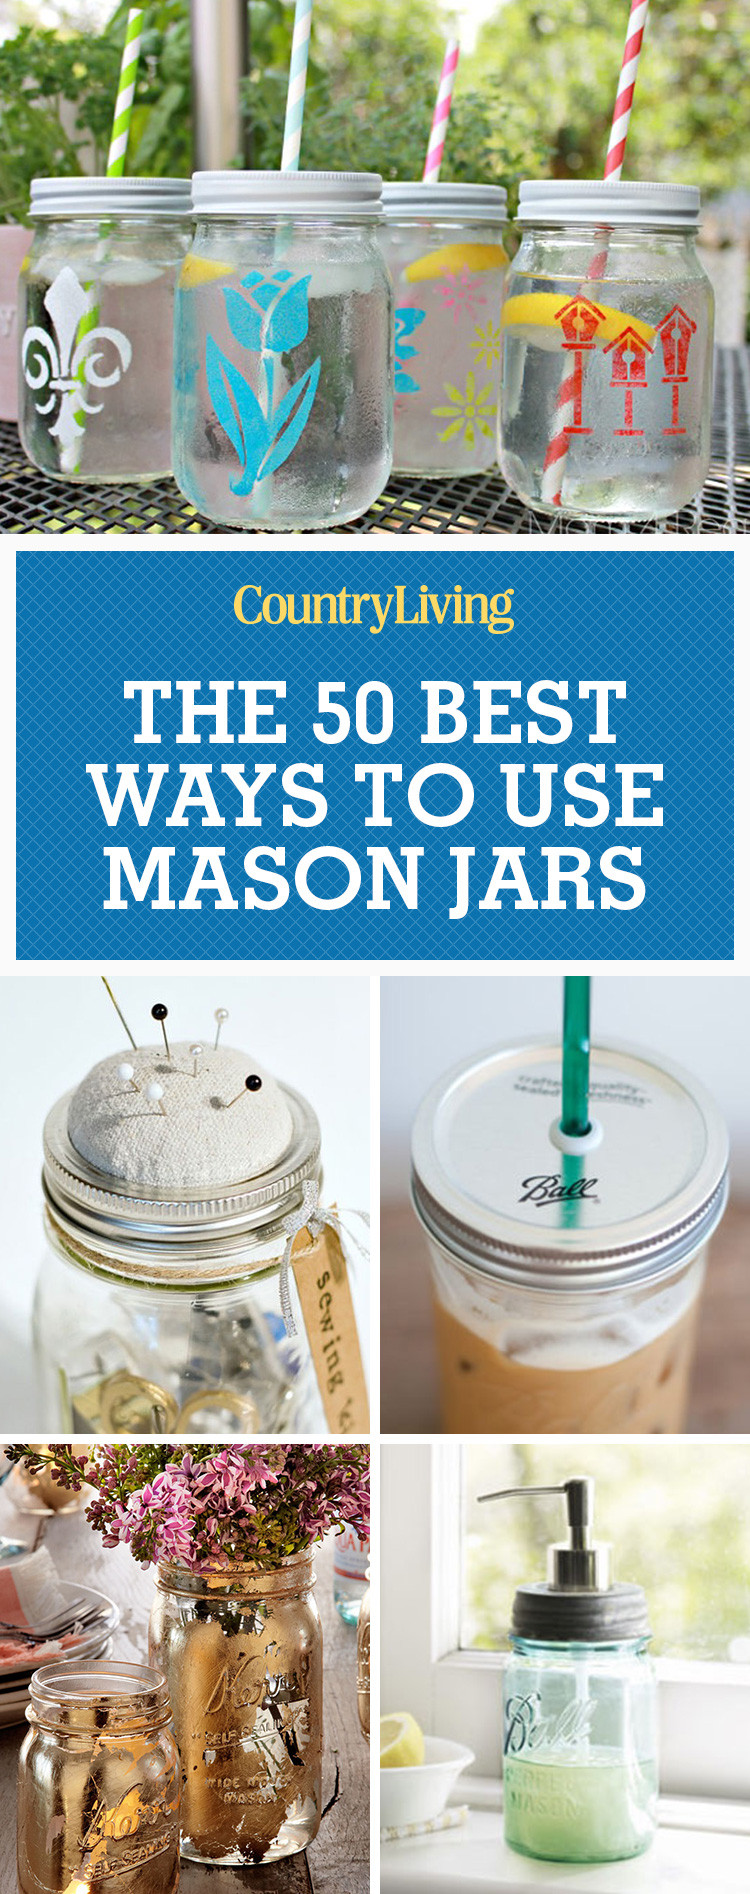 Best ideas about Mason Jar Craft Ideas . Save or Pin 50 Great Mason Jar Ideas Easy Uses for Mason Jars Now.